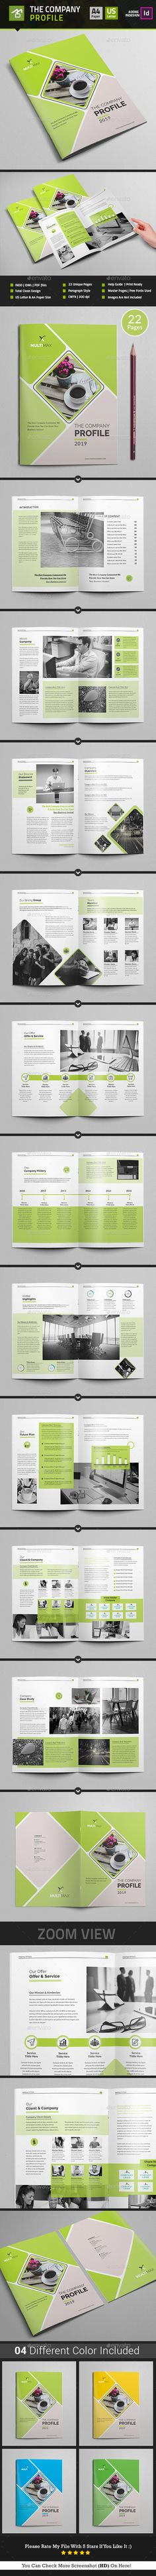 company profile brochures pack 3 in 1 pinterest company